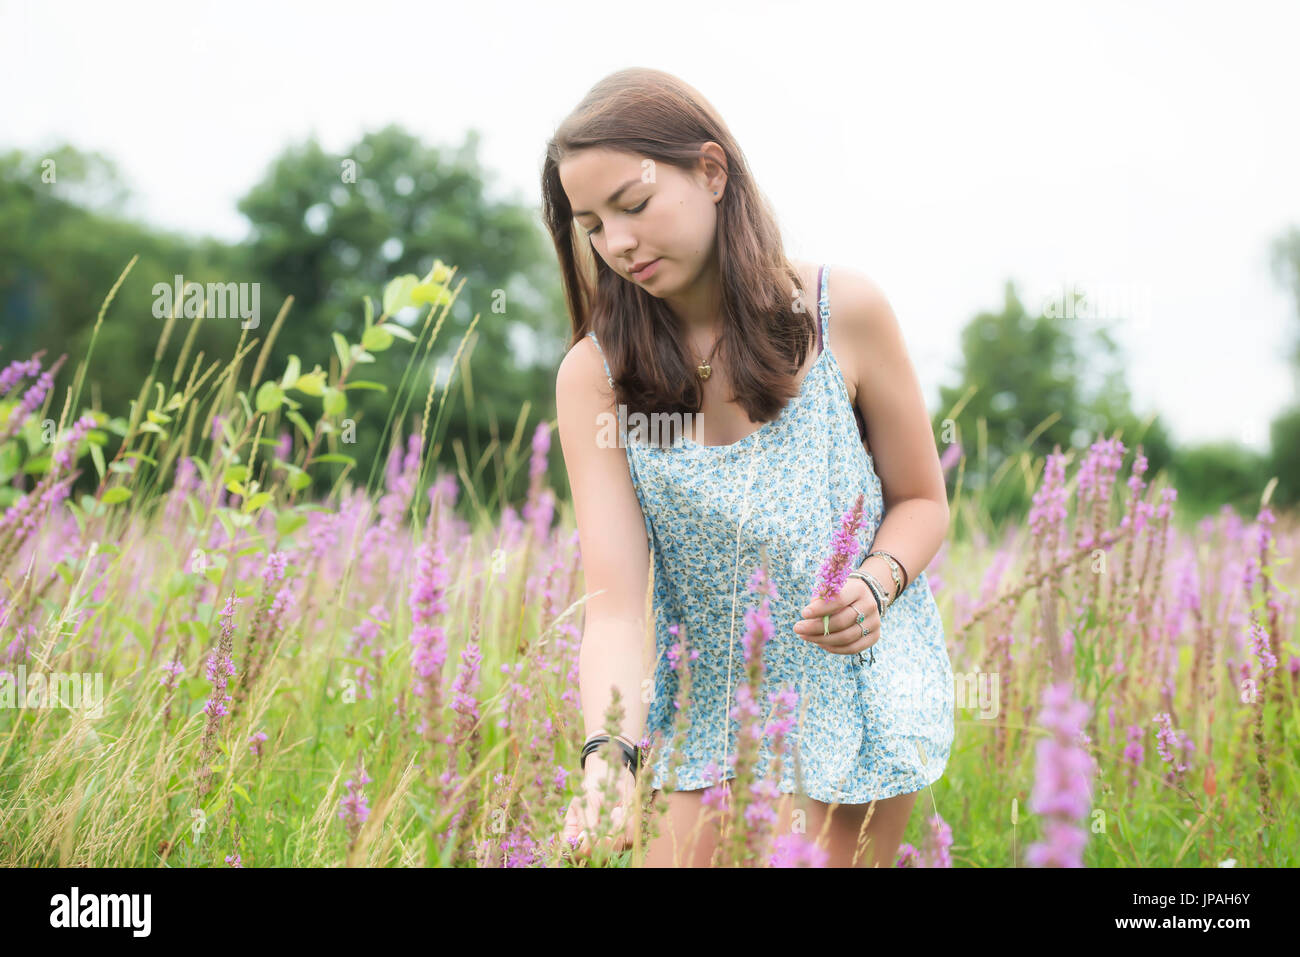 girl in high grass - Stock Image